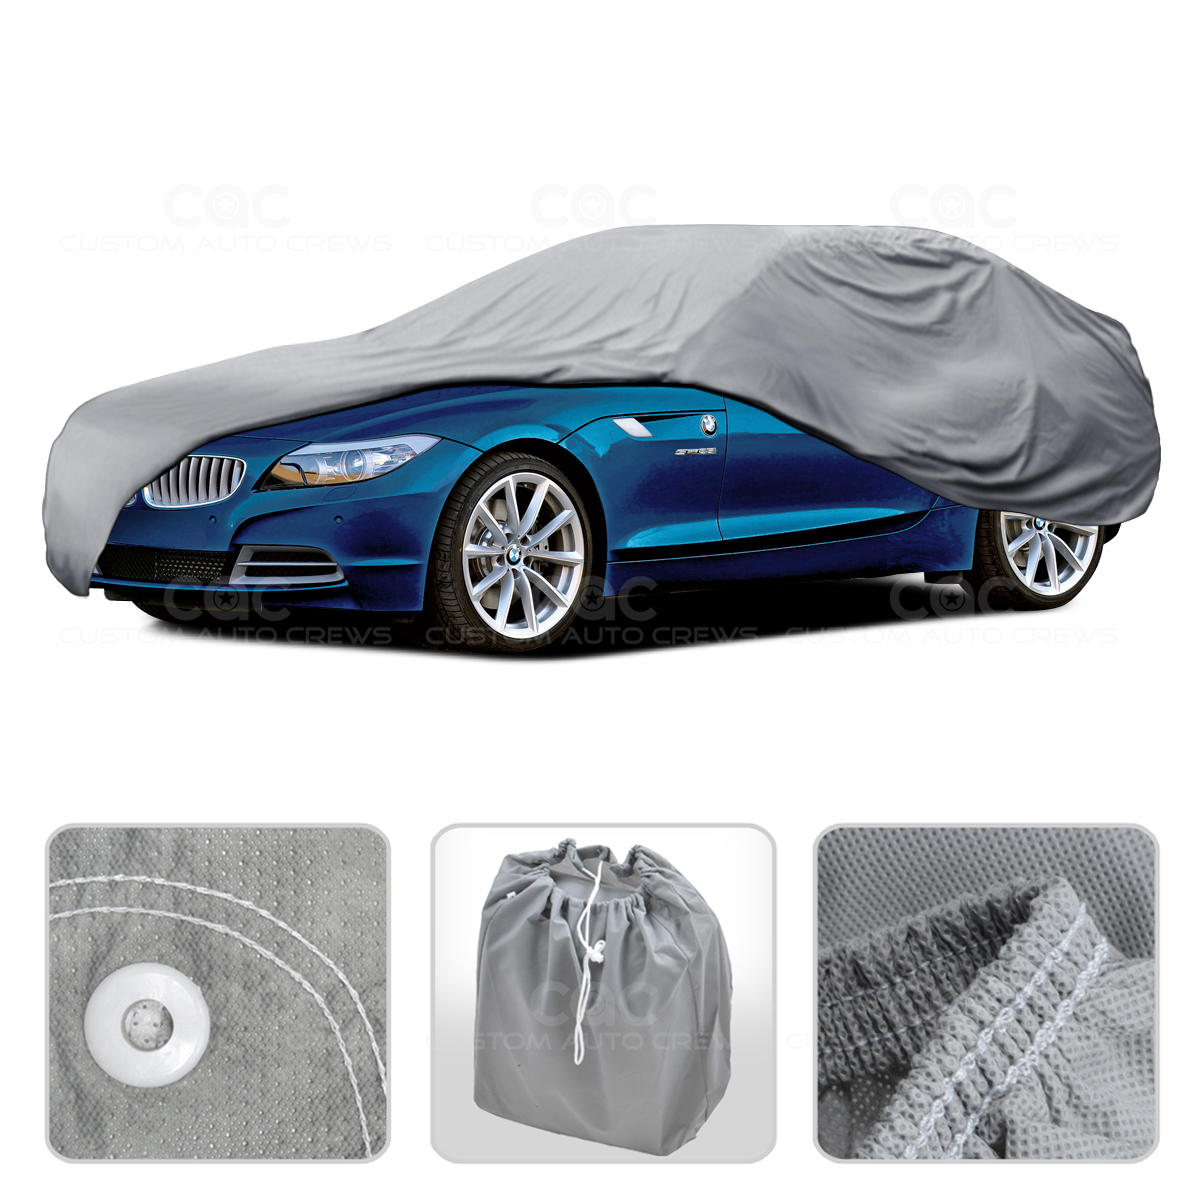 Bmw Z4 Car Cover: Car Cover For BMW Z1 Z3 Z4 Z8 Outdoor Breathable Sun Dust